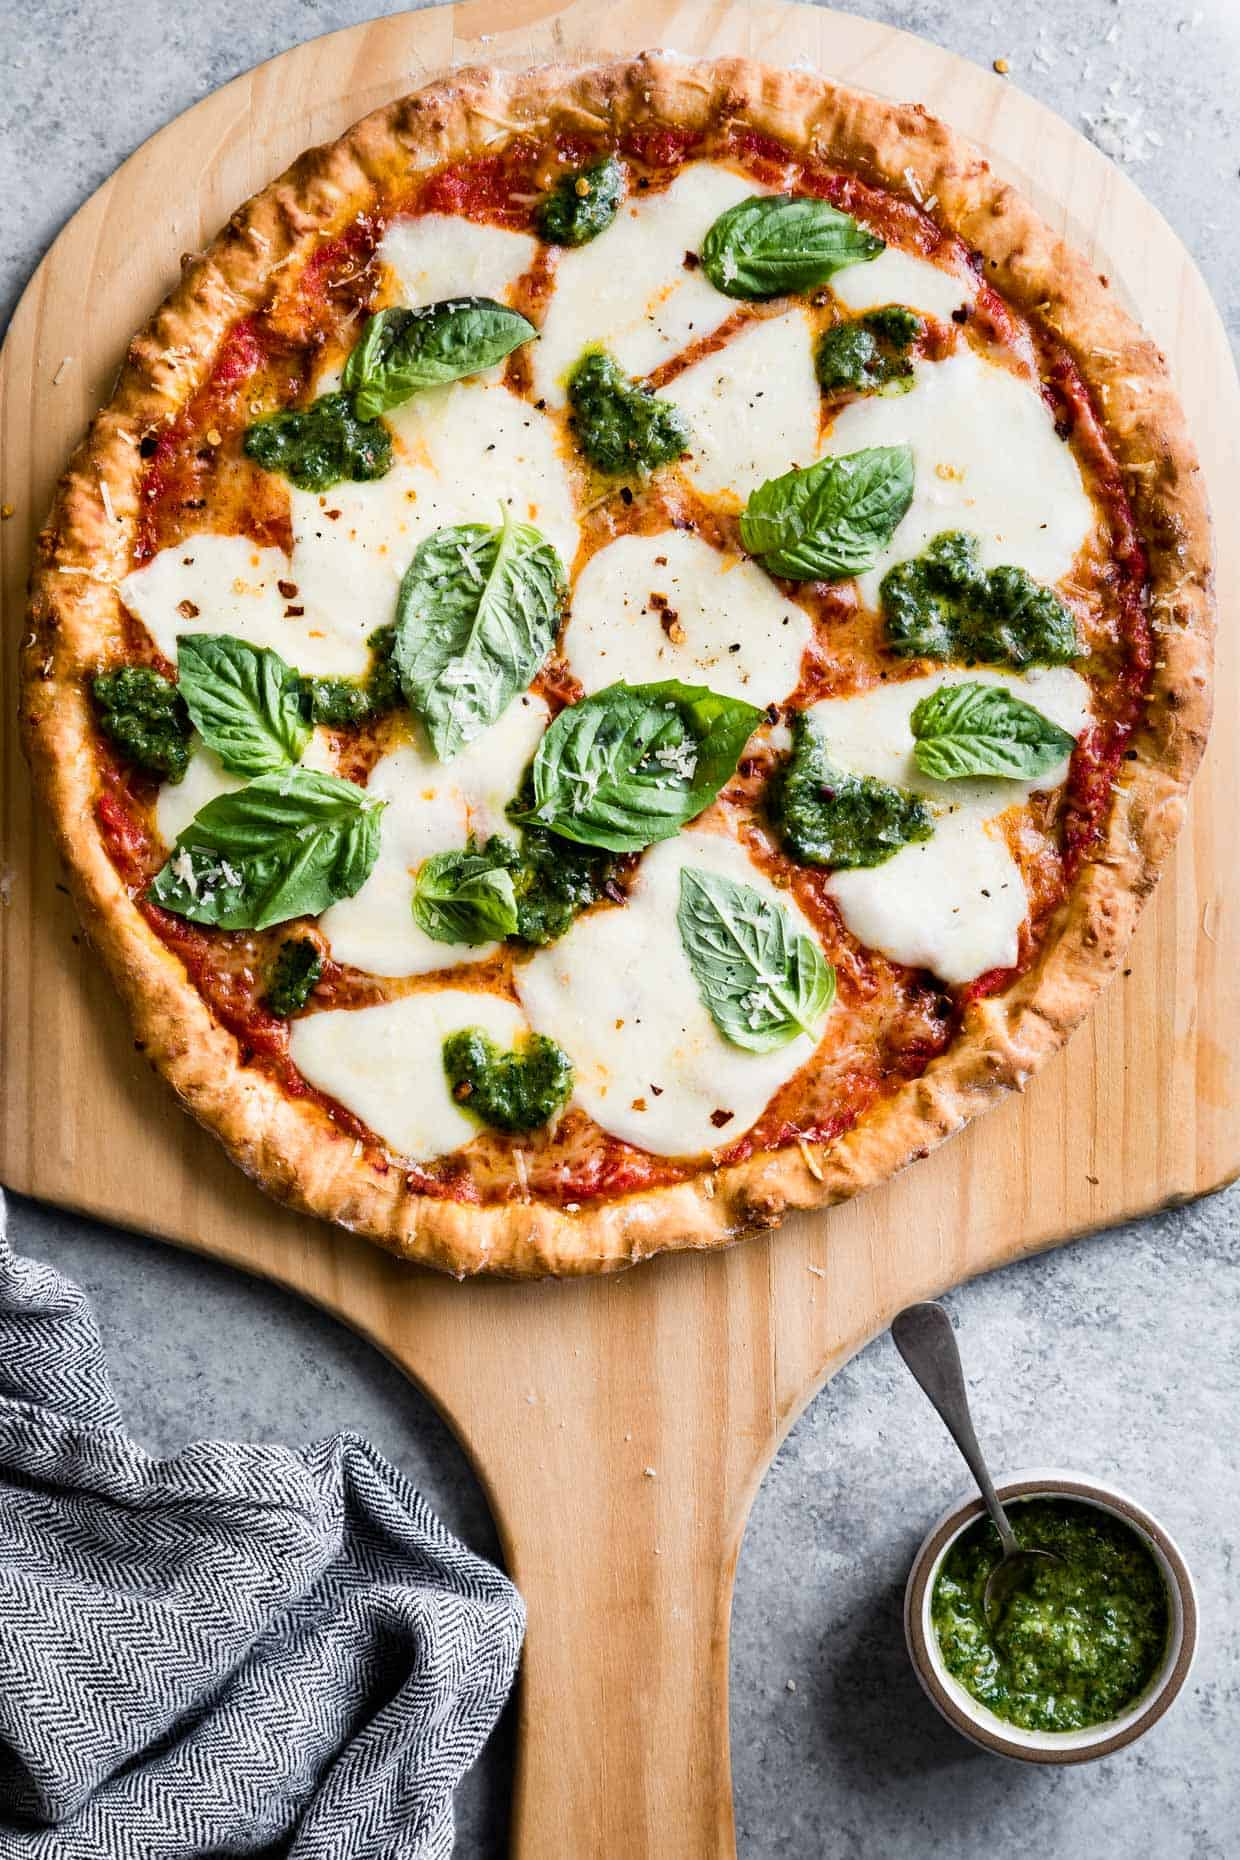 Best Gluten-Free Pizza Crust